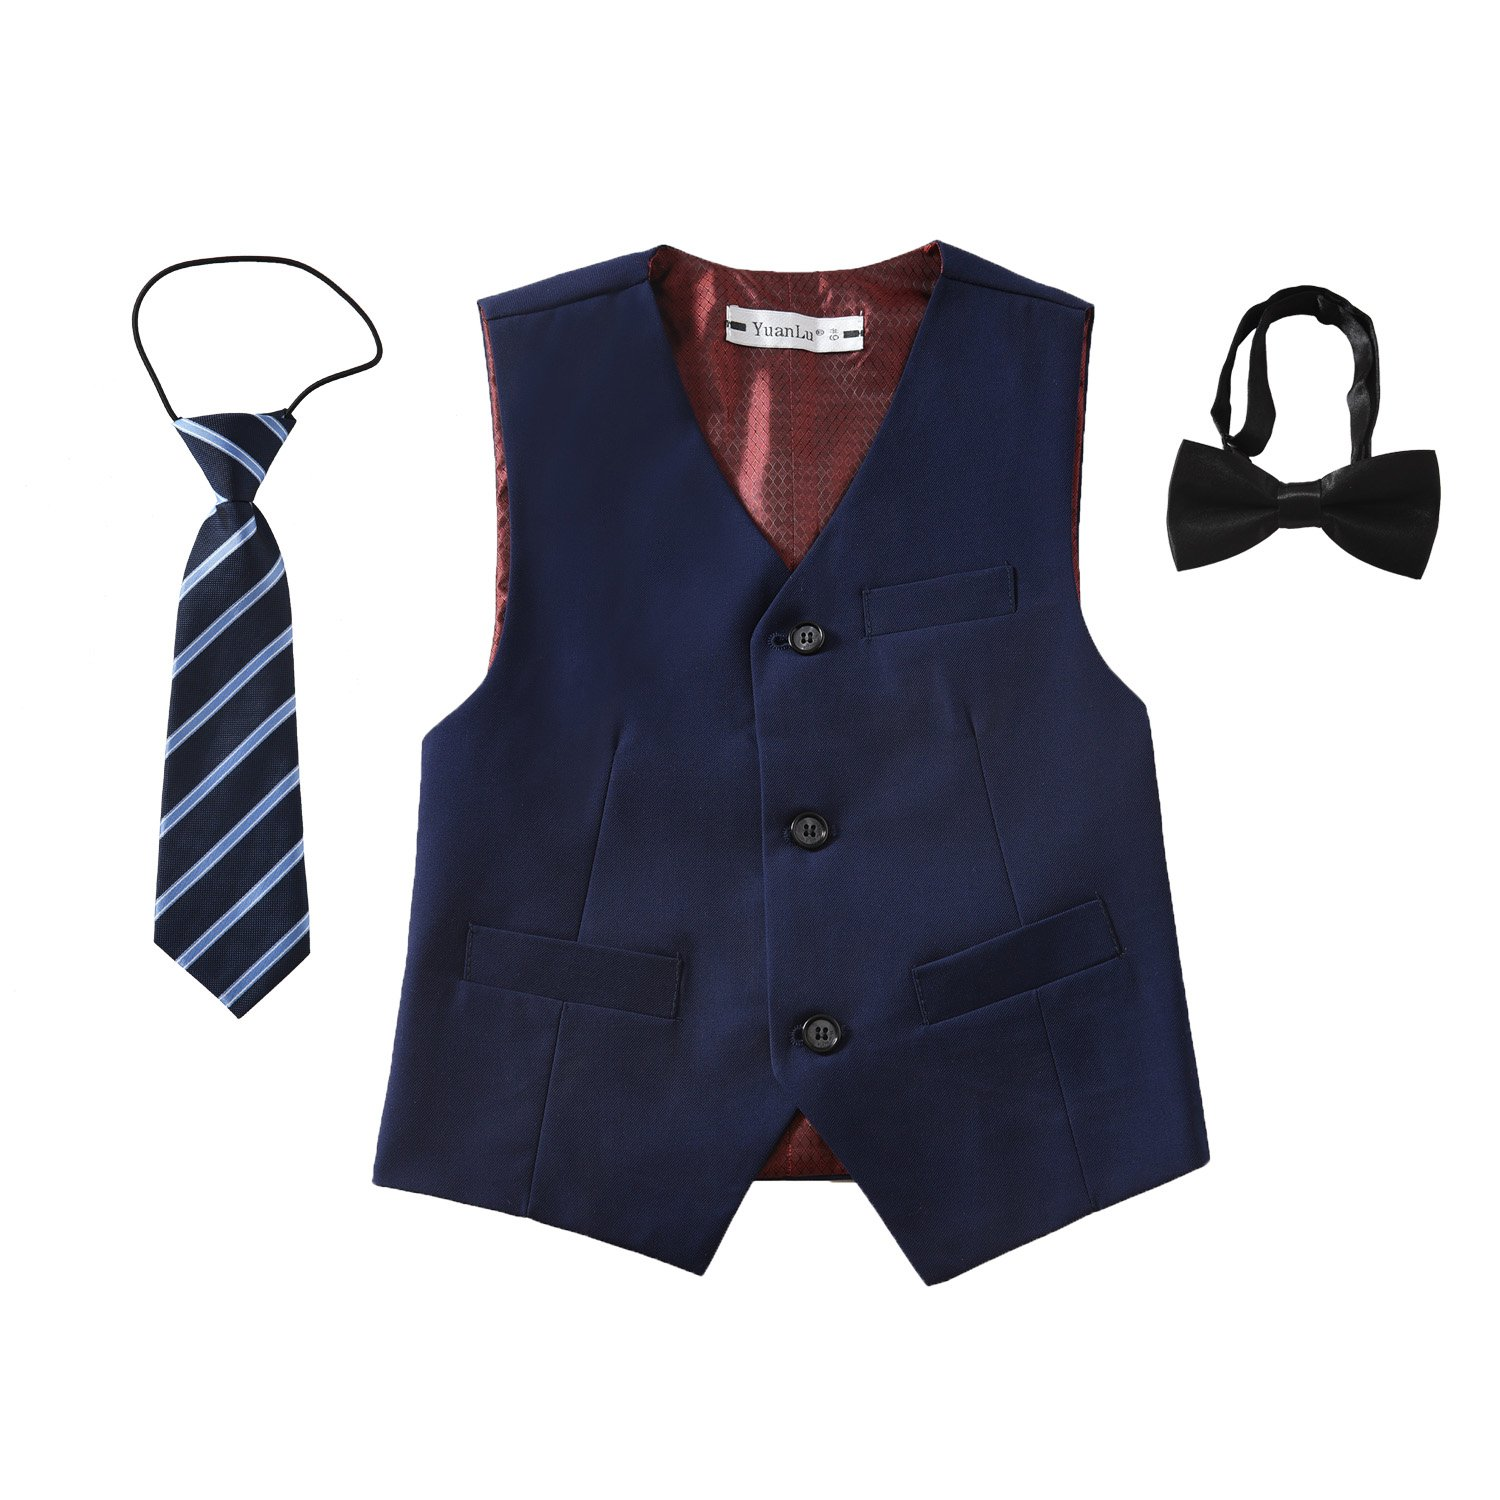 Yuanlu 3 Piece Boys' Formal Suit Vest Set with Bowtie and Tie